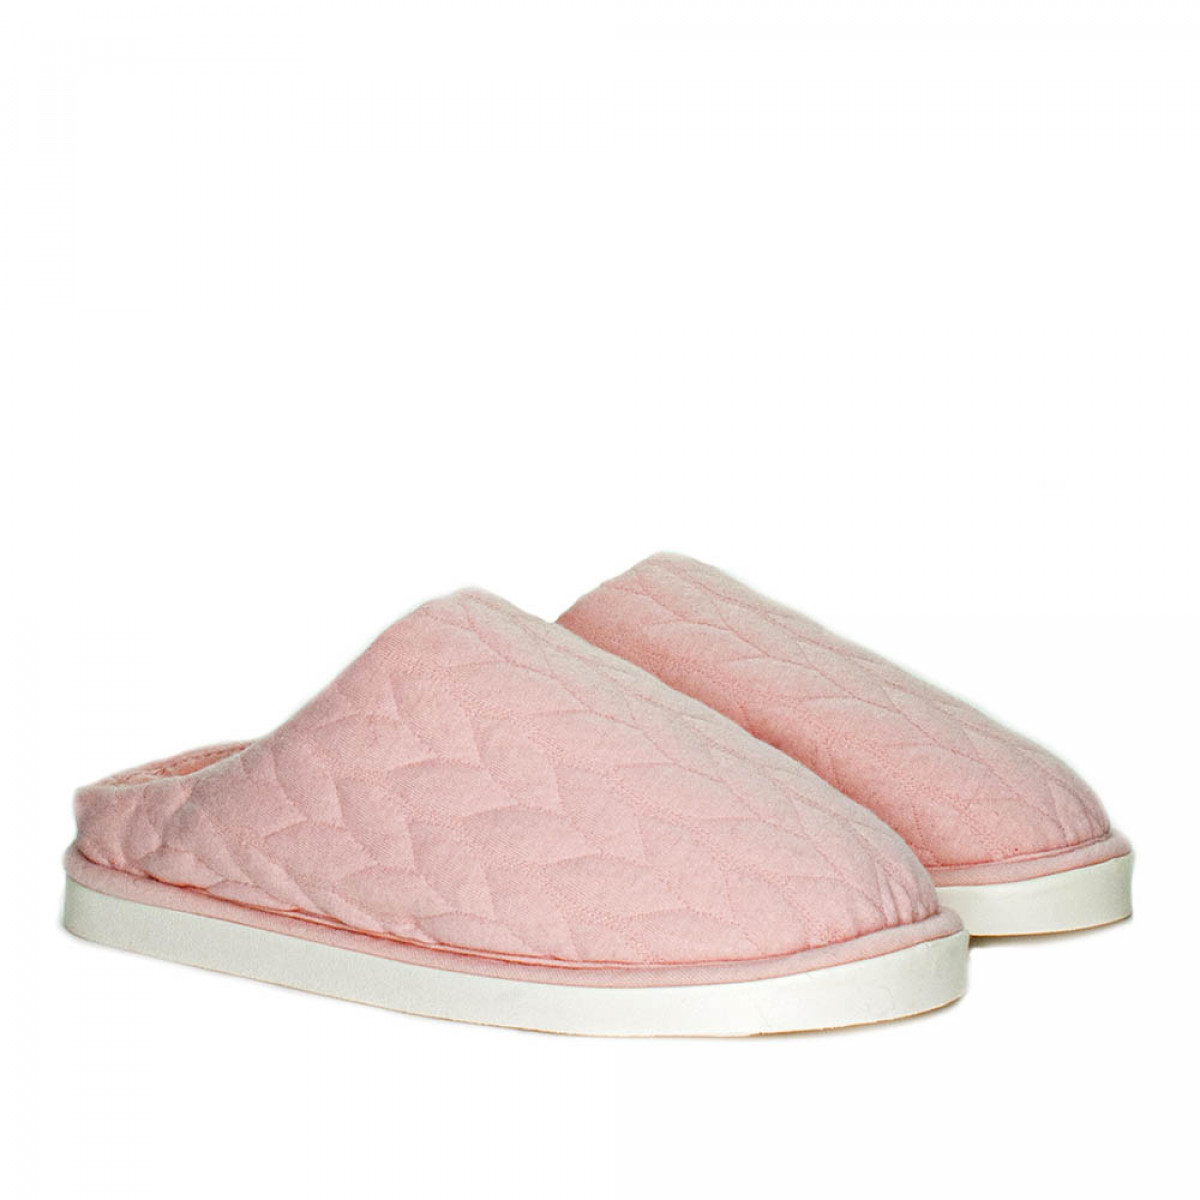 Women's Home slippers FAMILY, Pale pink